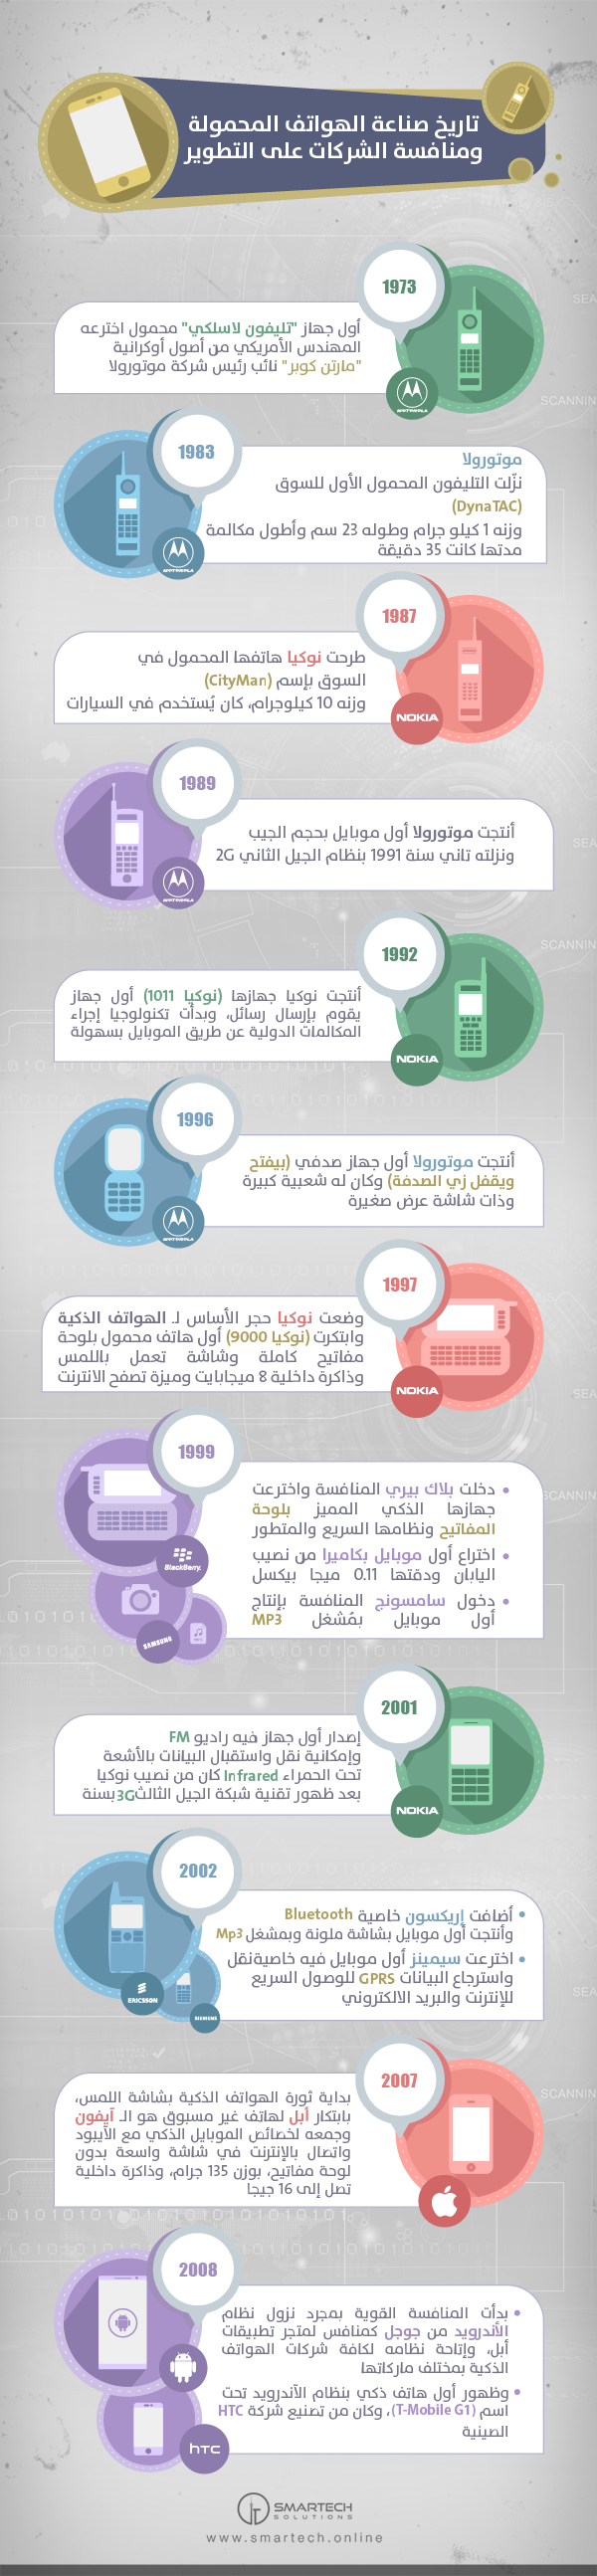 Mobile Phone Development History infographic